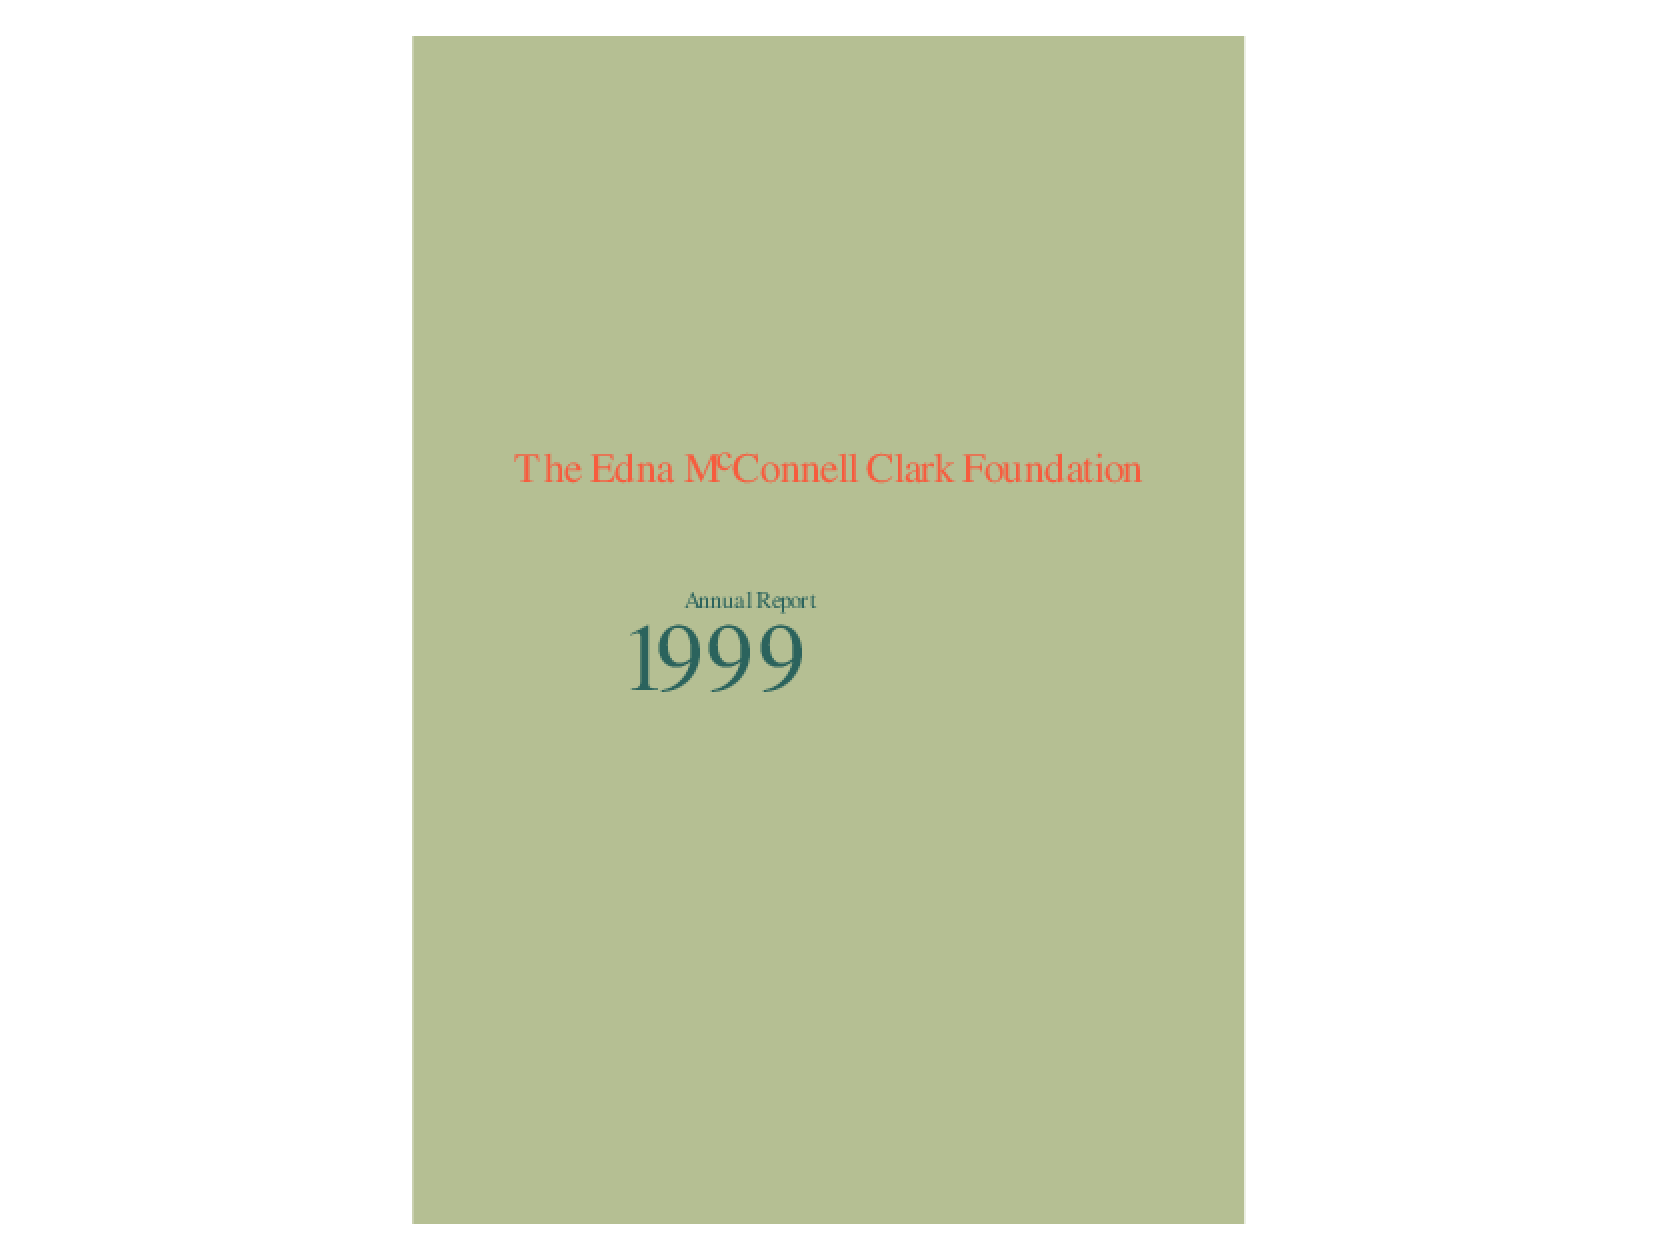 Edna McConnell Clark Foundation - 1999 Annual Report